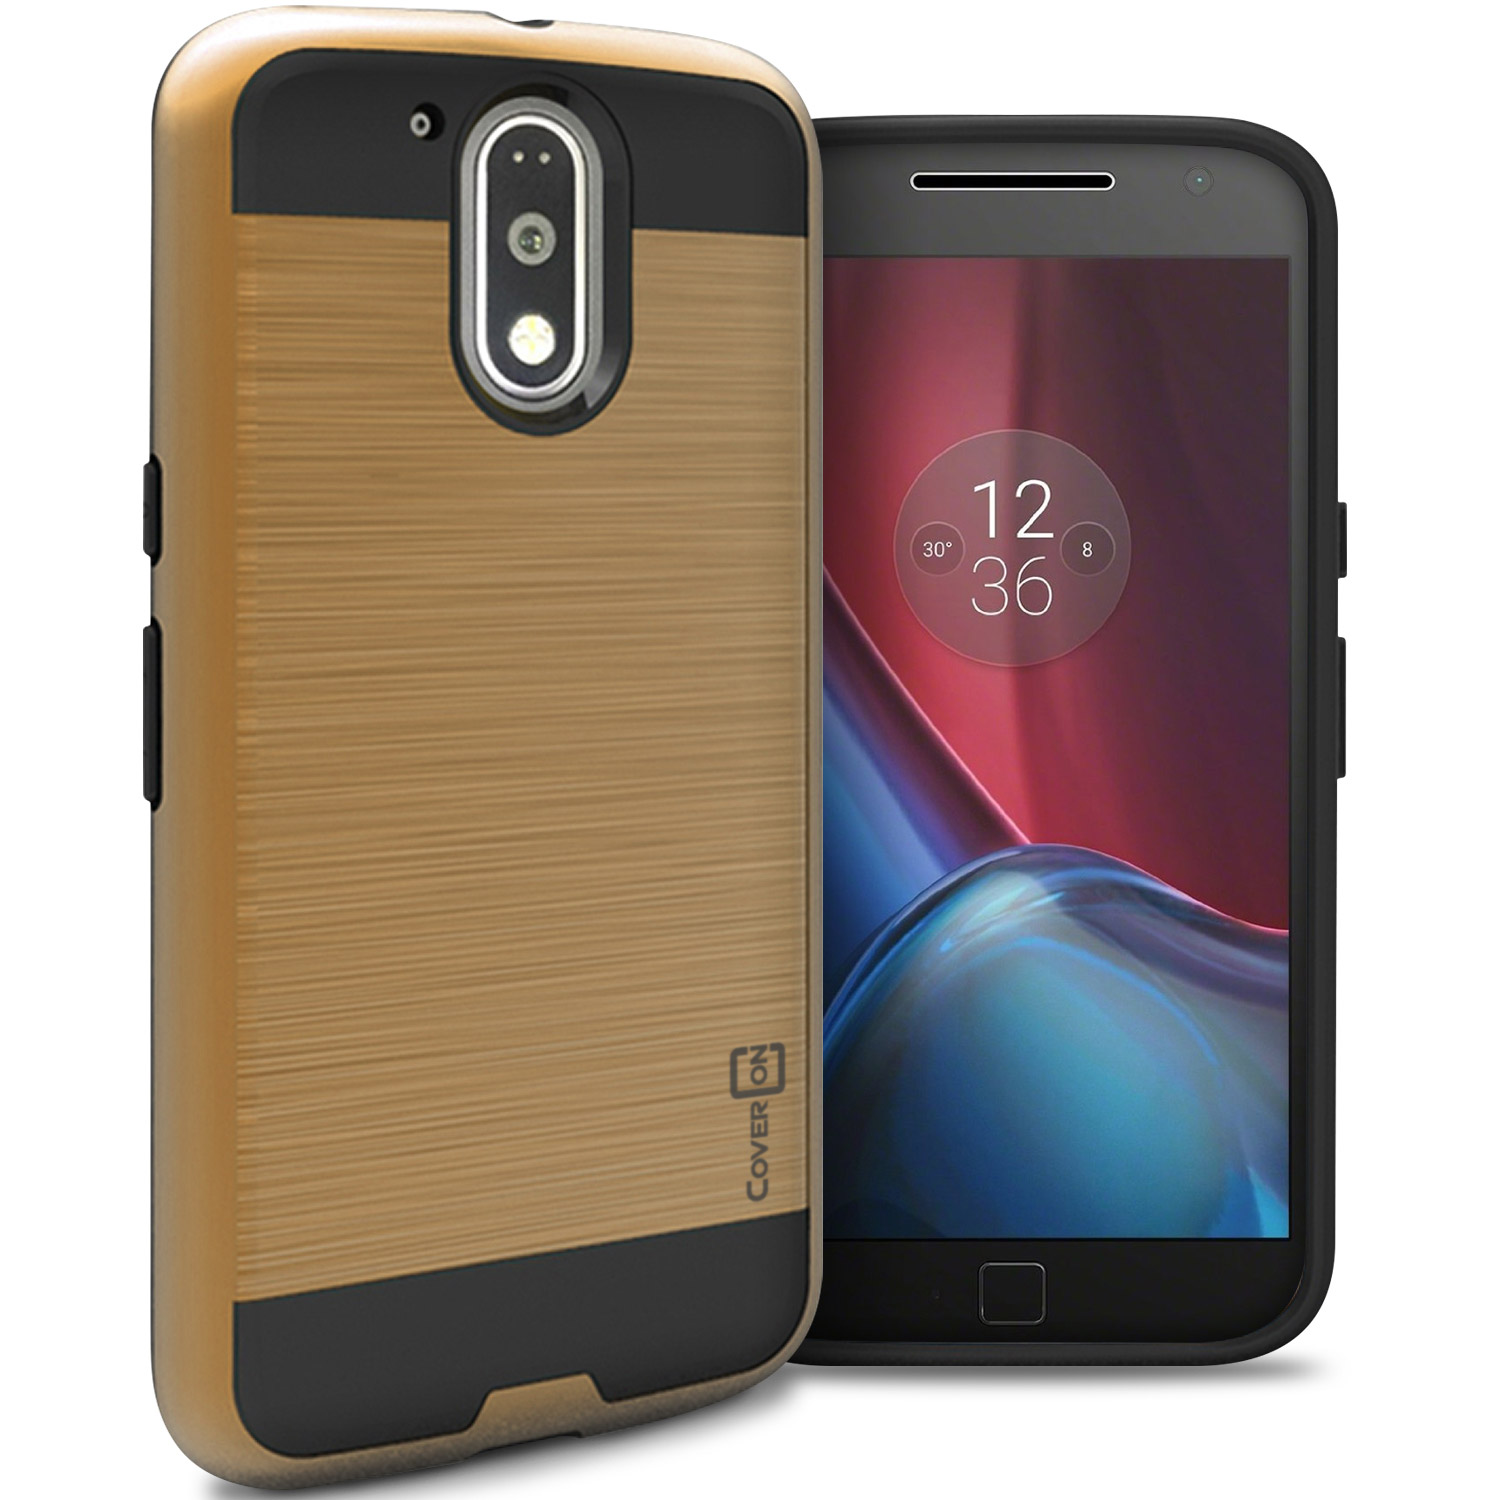 official photos c3f23 0f503 Details about for Motorola Moto G4 / Moto G4 Plus Case - Gold Slim Rugged  Hybrid Phone Cover